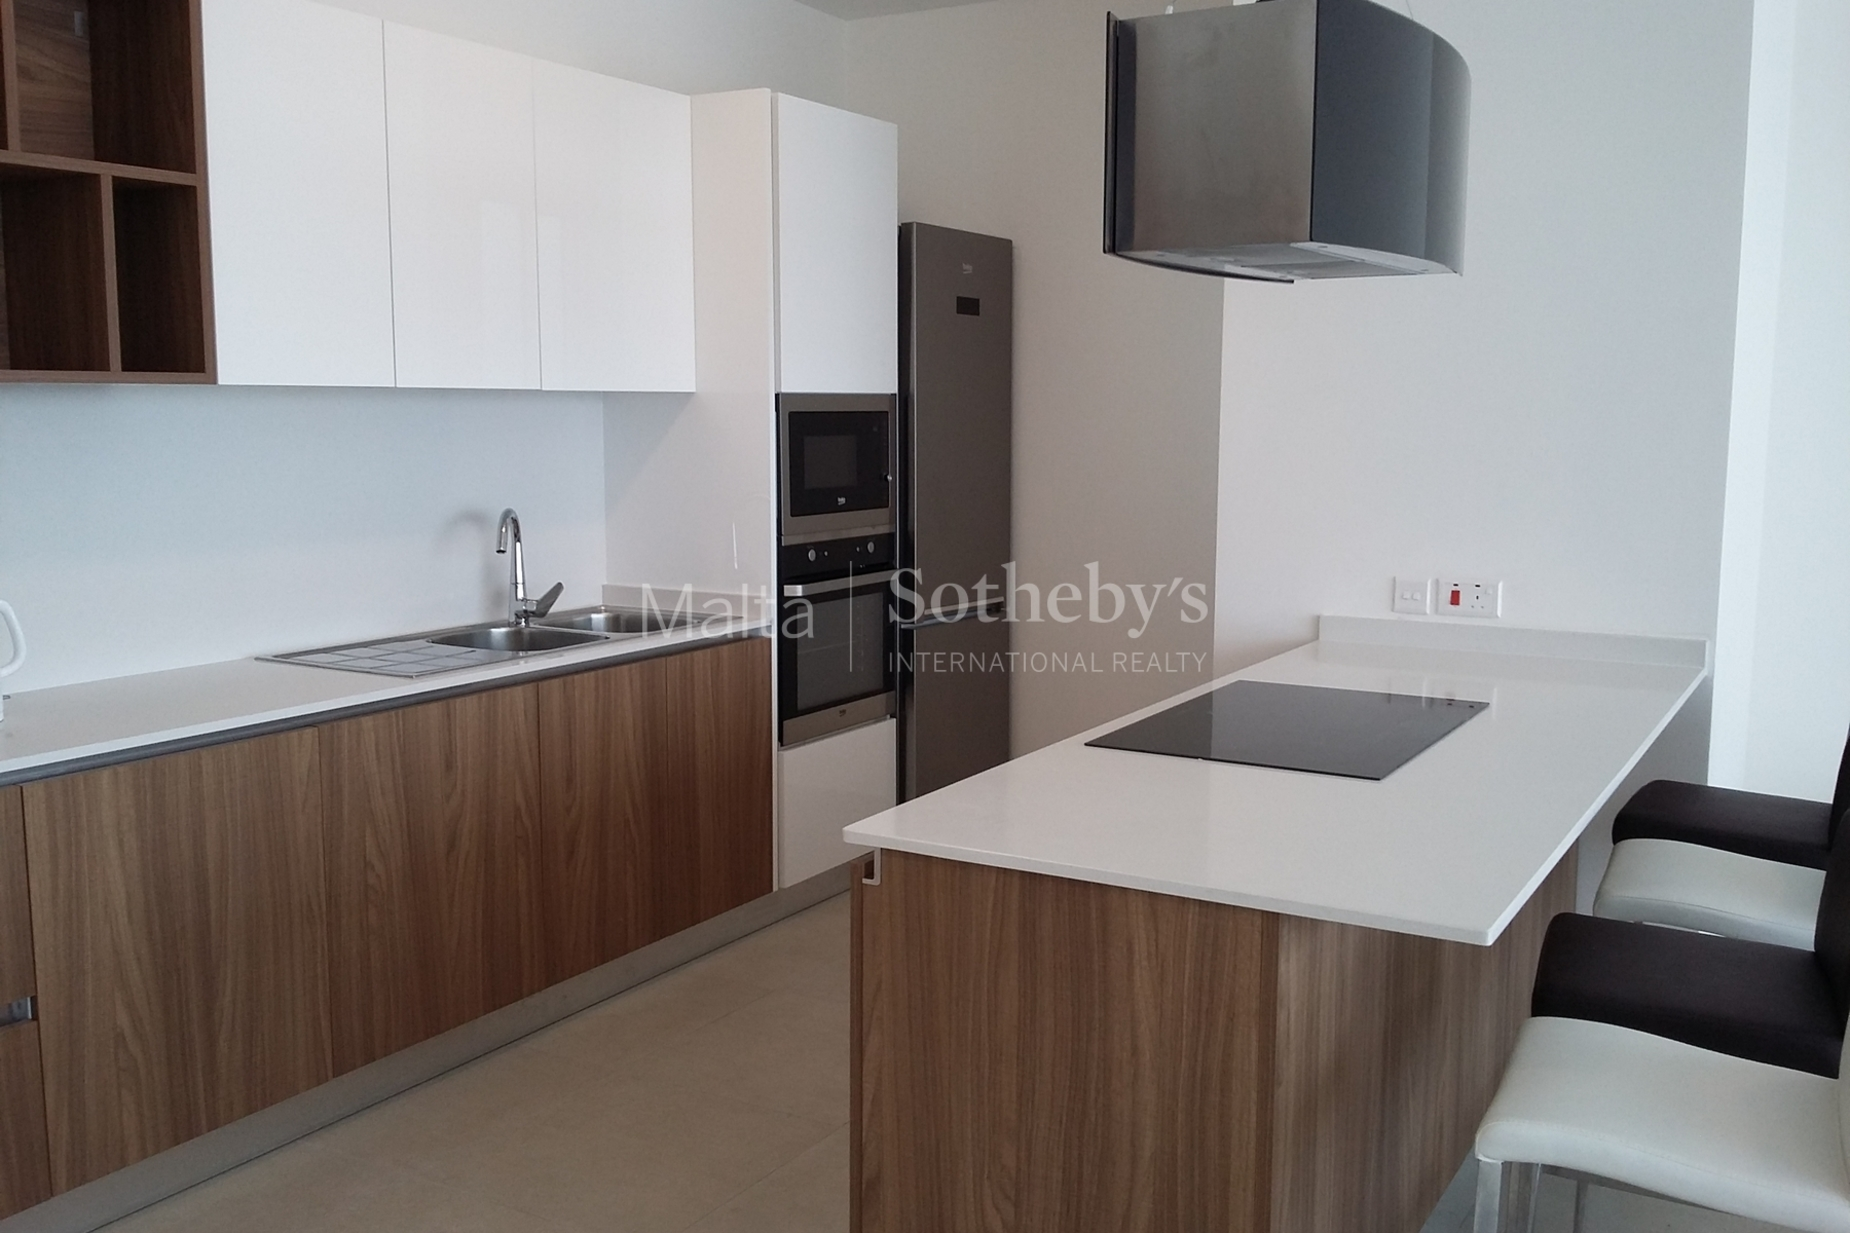 2 bed Penthouse For Rent in Ibragg, Ibragg - thumb 2